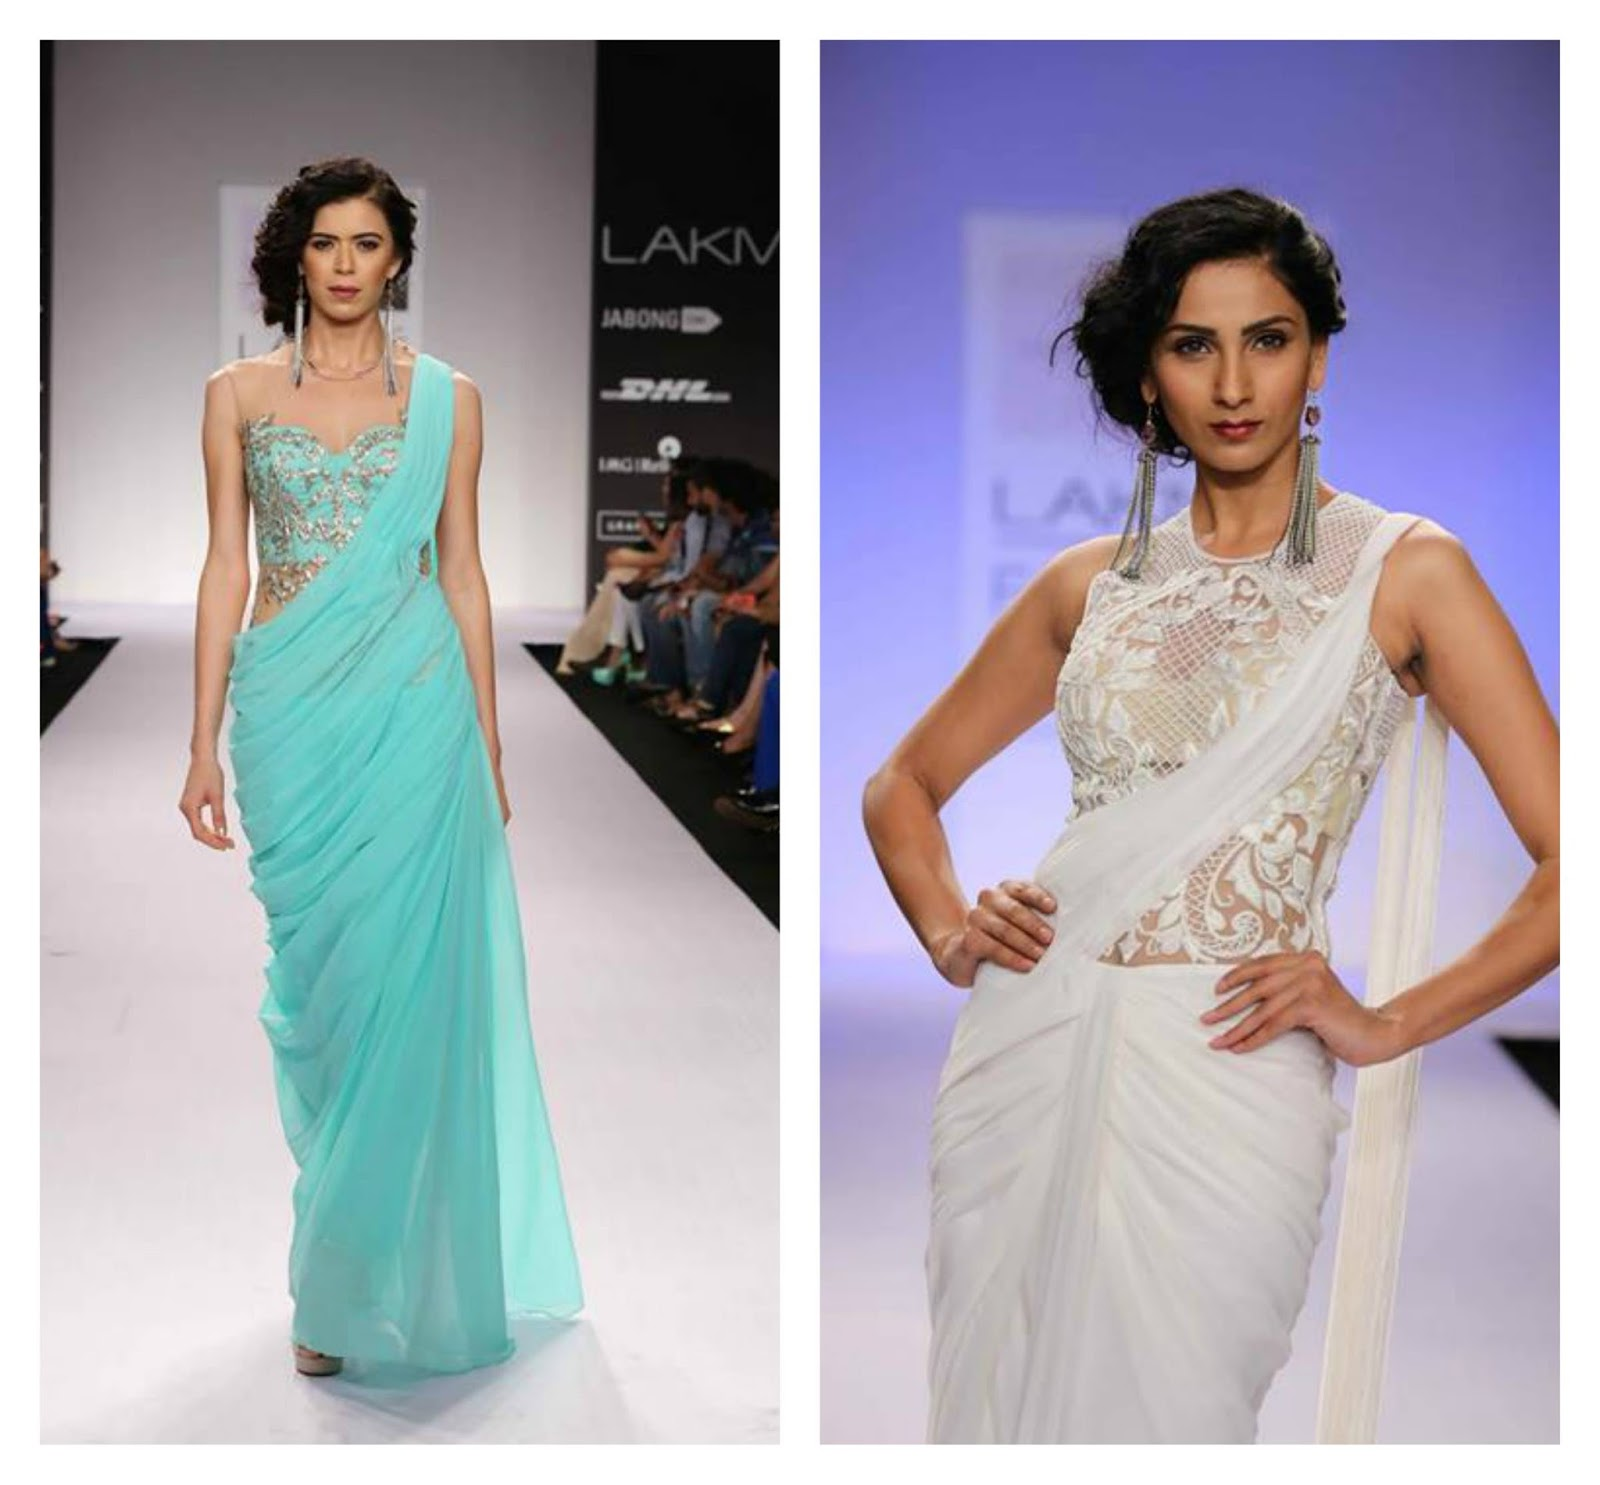 designer saree 2014 lakme fashion week